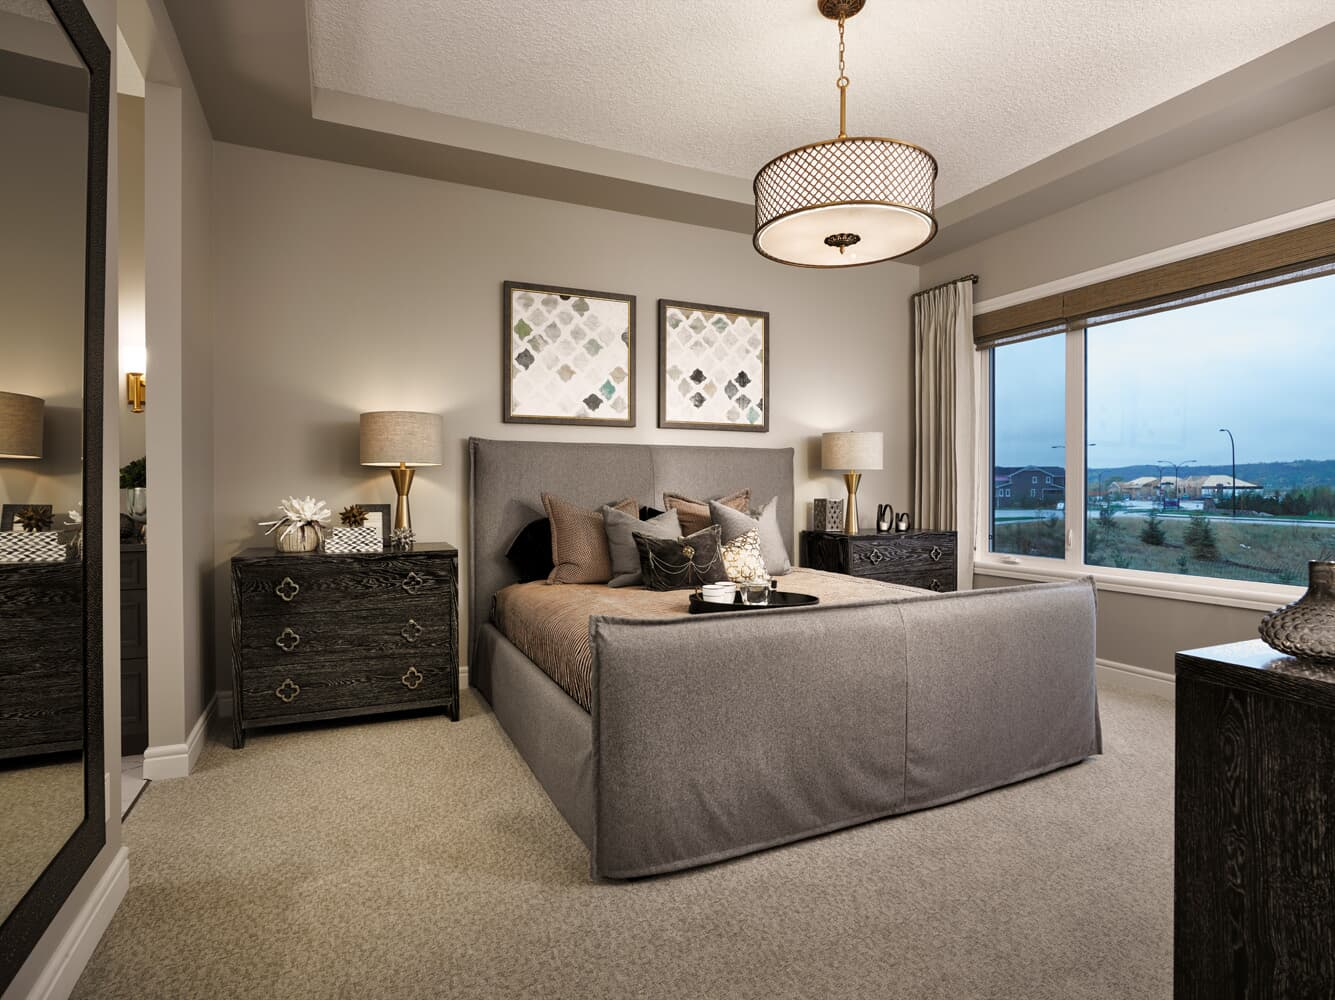 the master bedroom in the carrara 2 in cranstons riverstone